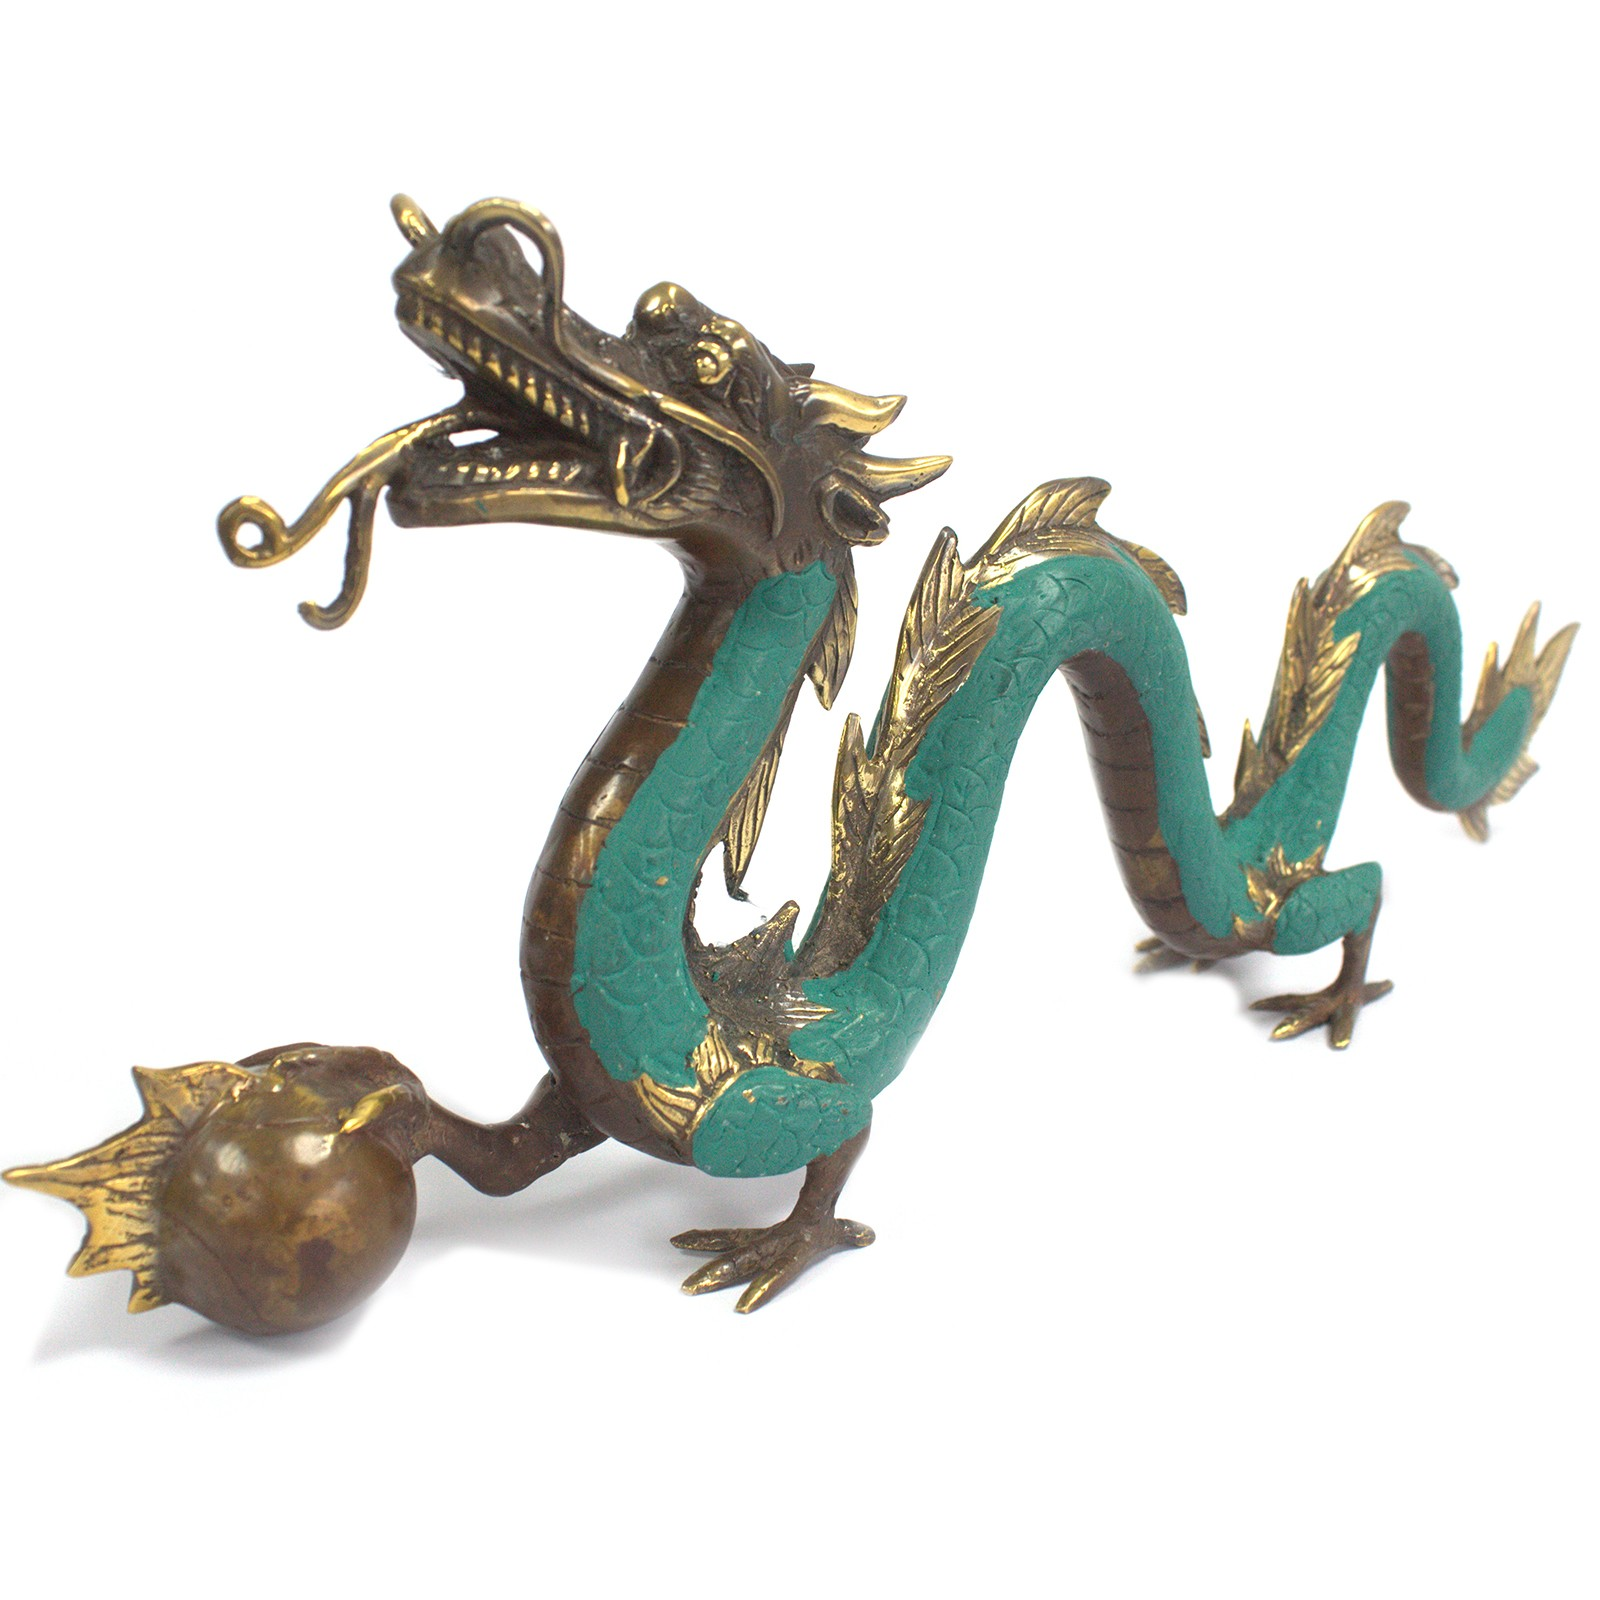 Fengshui - Big Dragon with Ball - 45cm